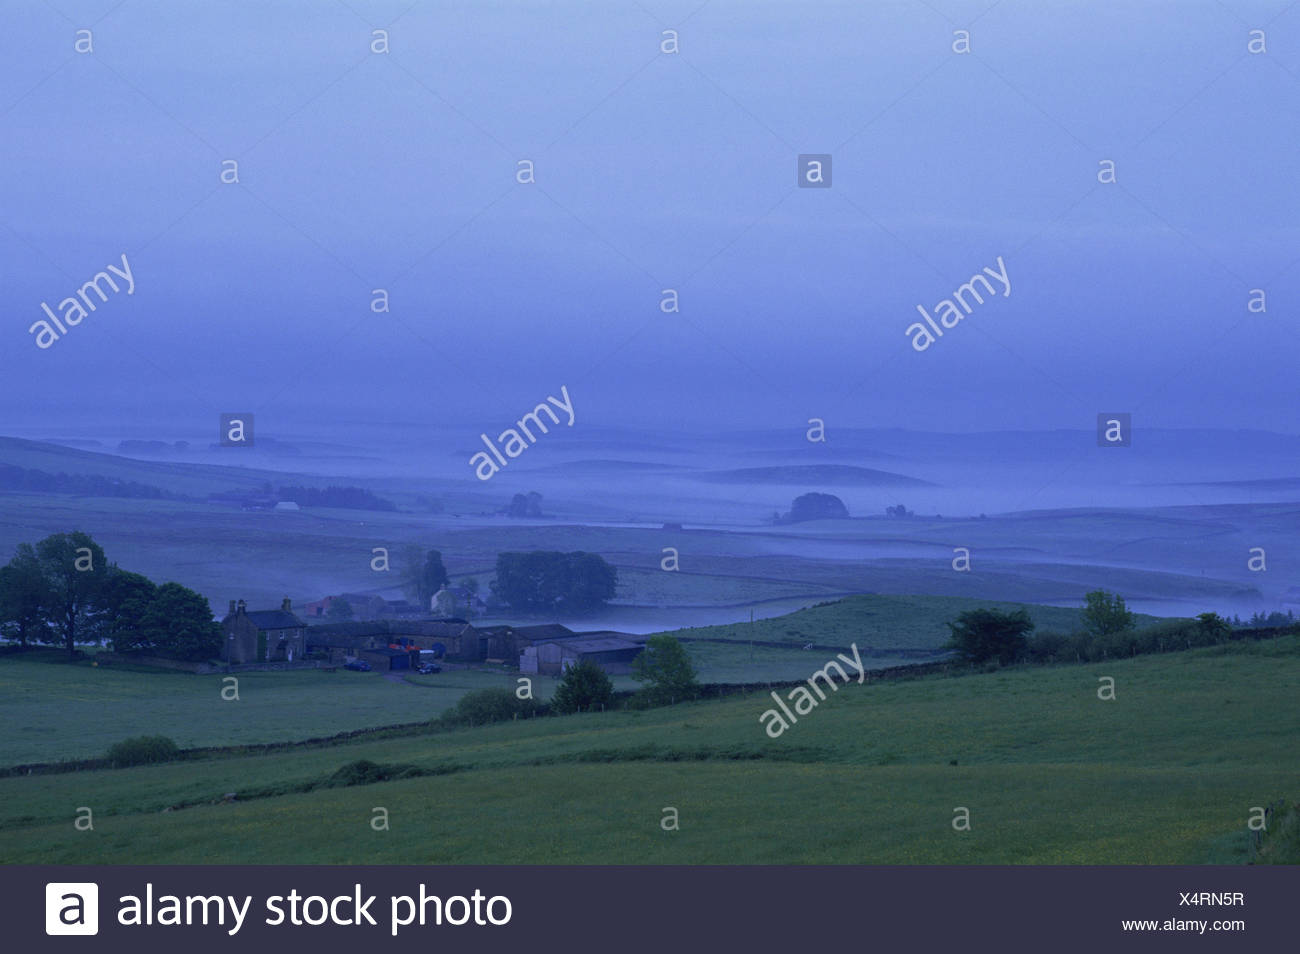 Great Britain, England, Northumbria, scenery, fog, farmhouse, Europe, Northumberland, width, distance, view, meadows, fields, hills, foggy, awfully, morning, atmospheric, deserted, blue, house, remotely, copy space, - Stock Image